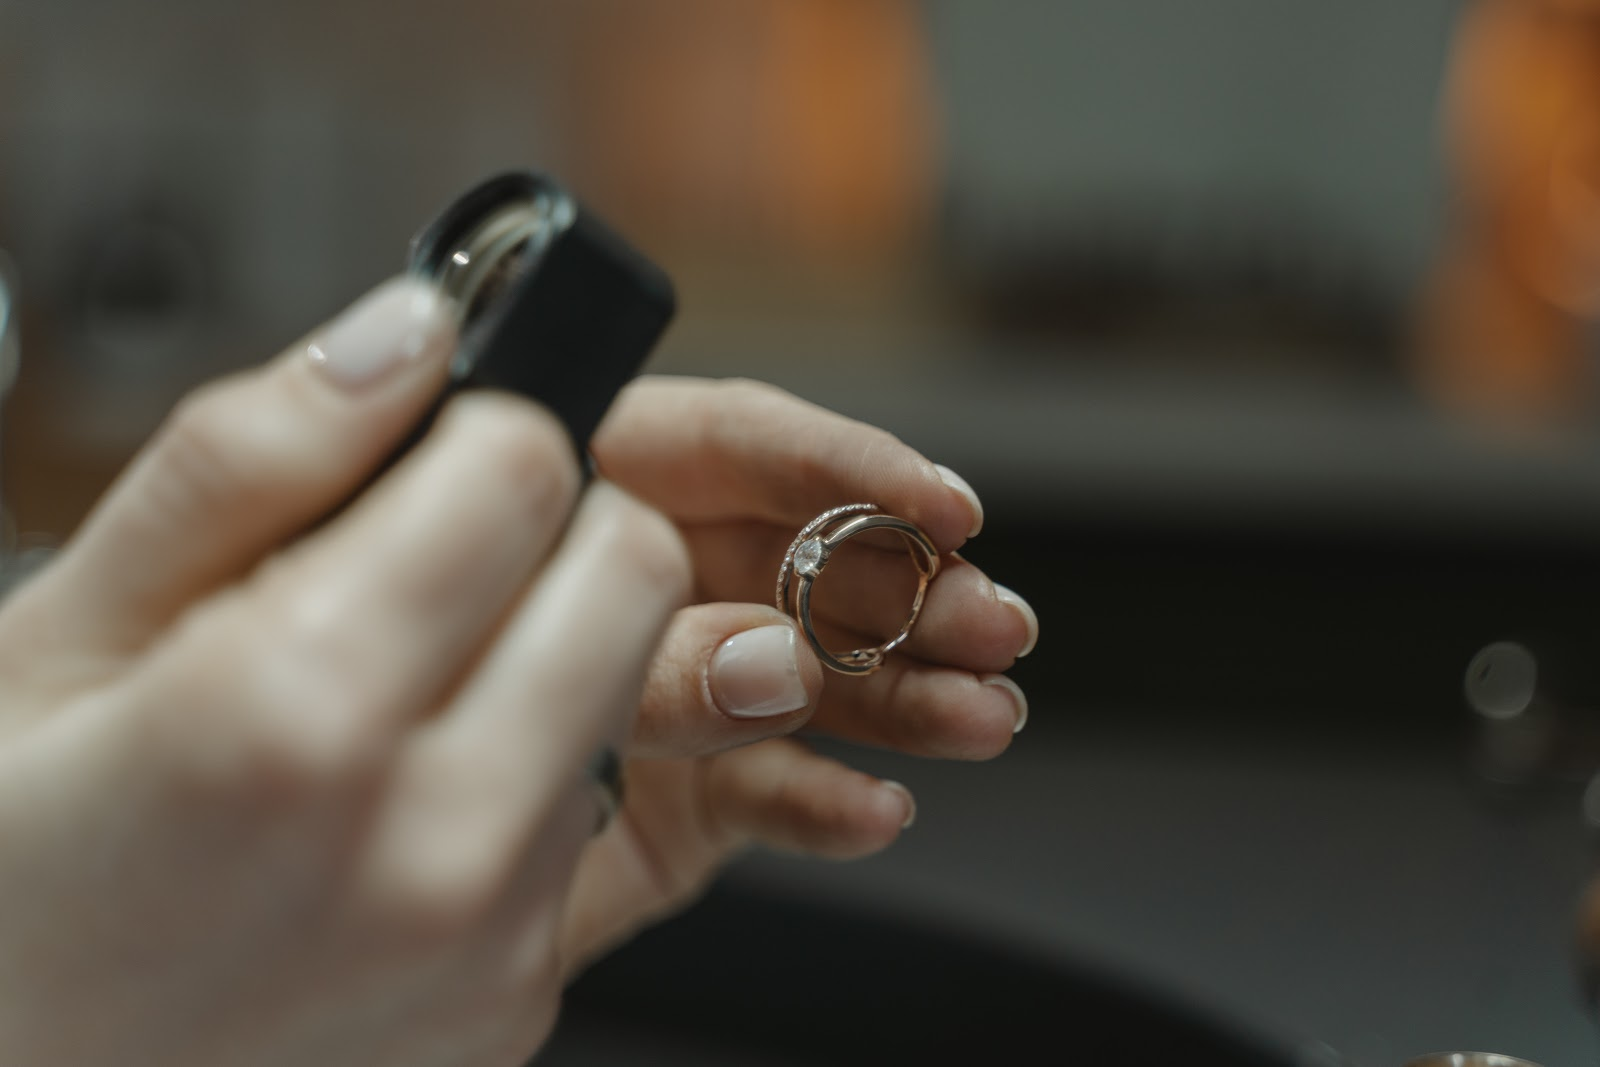 person holding a ring and magnifying glass to observe the ring